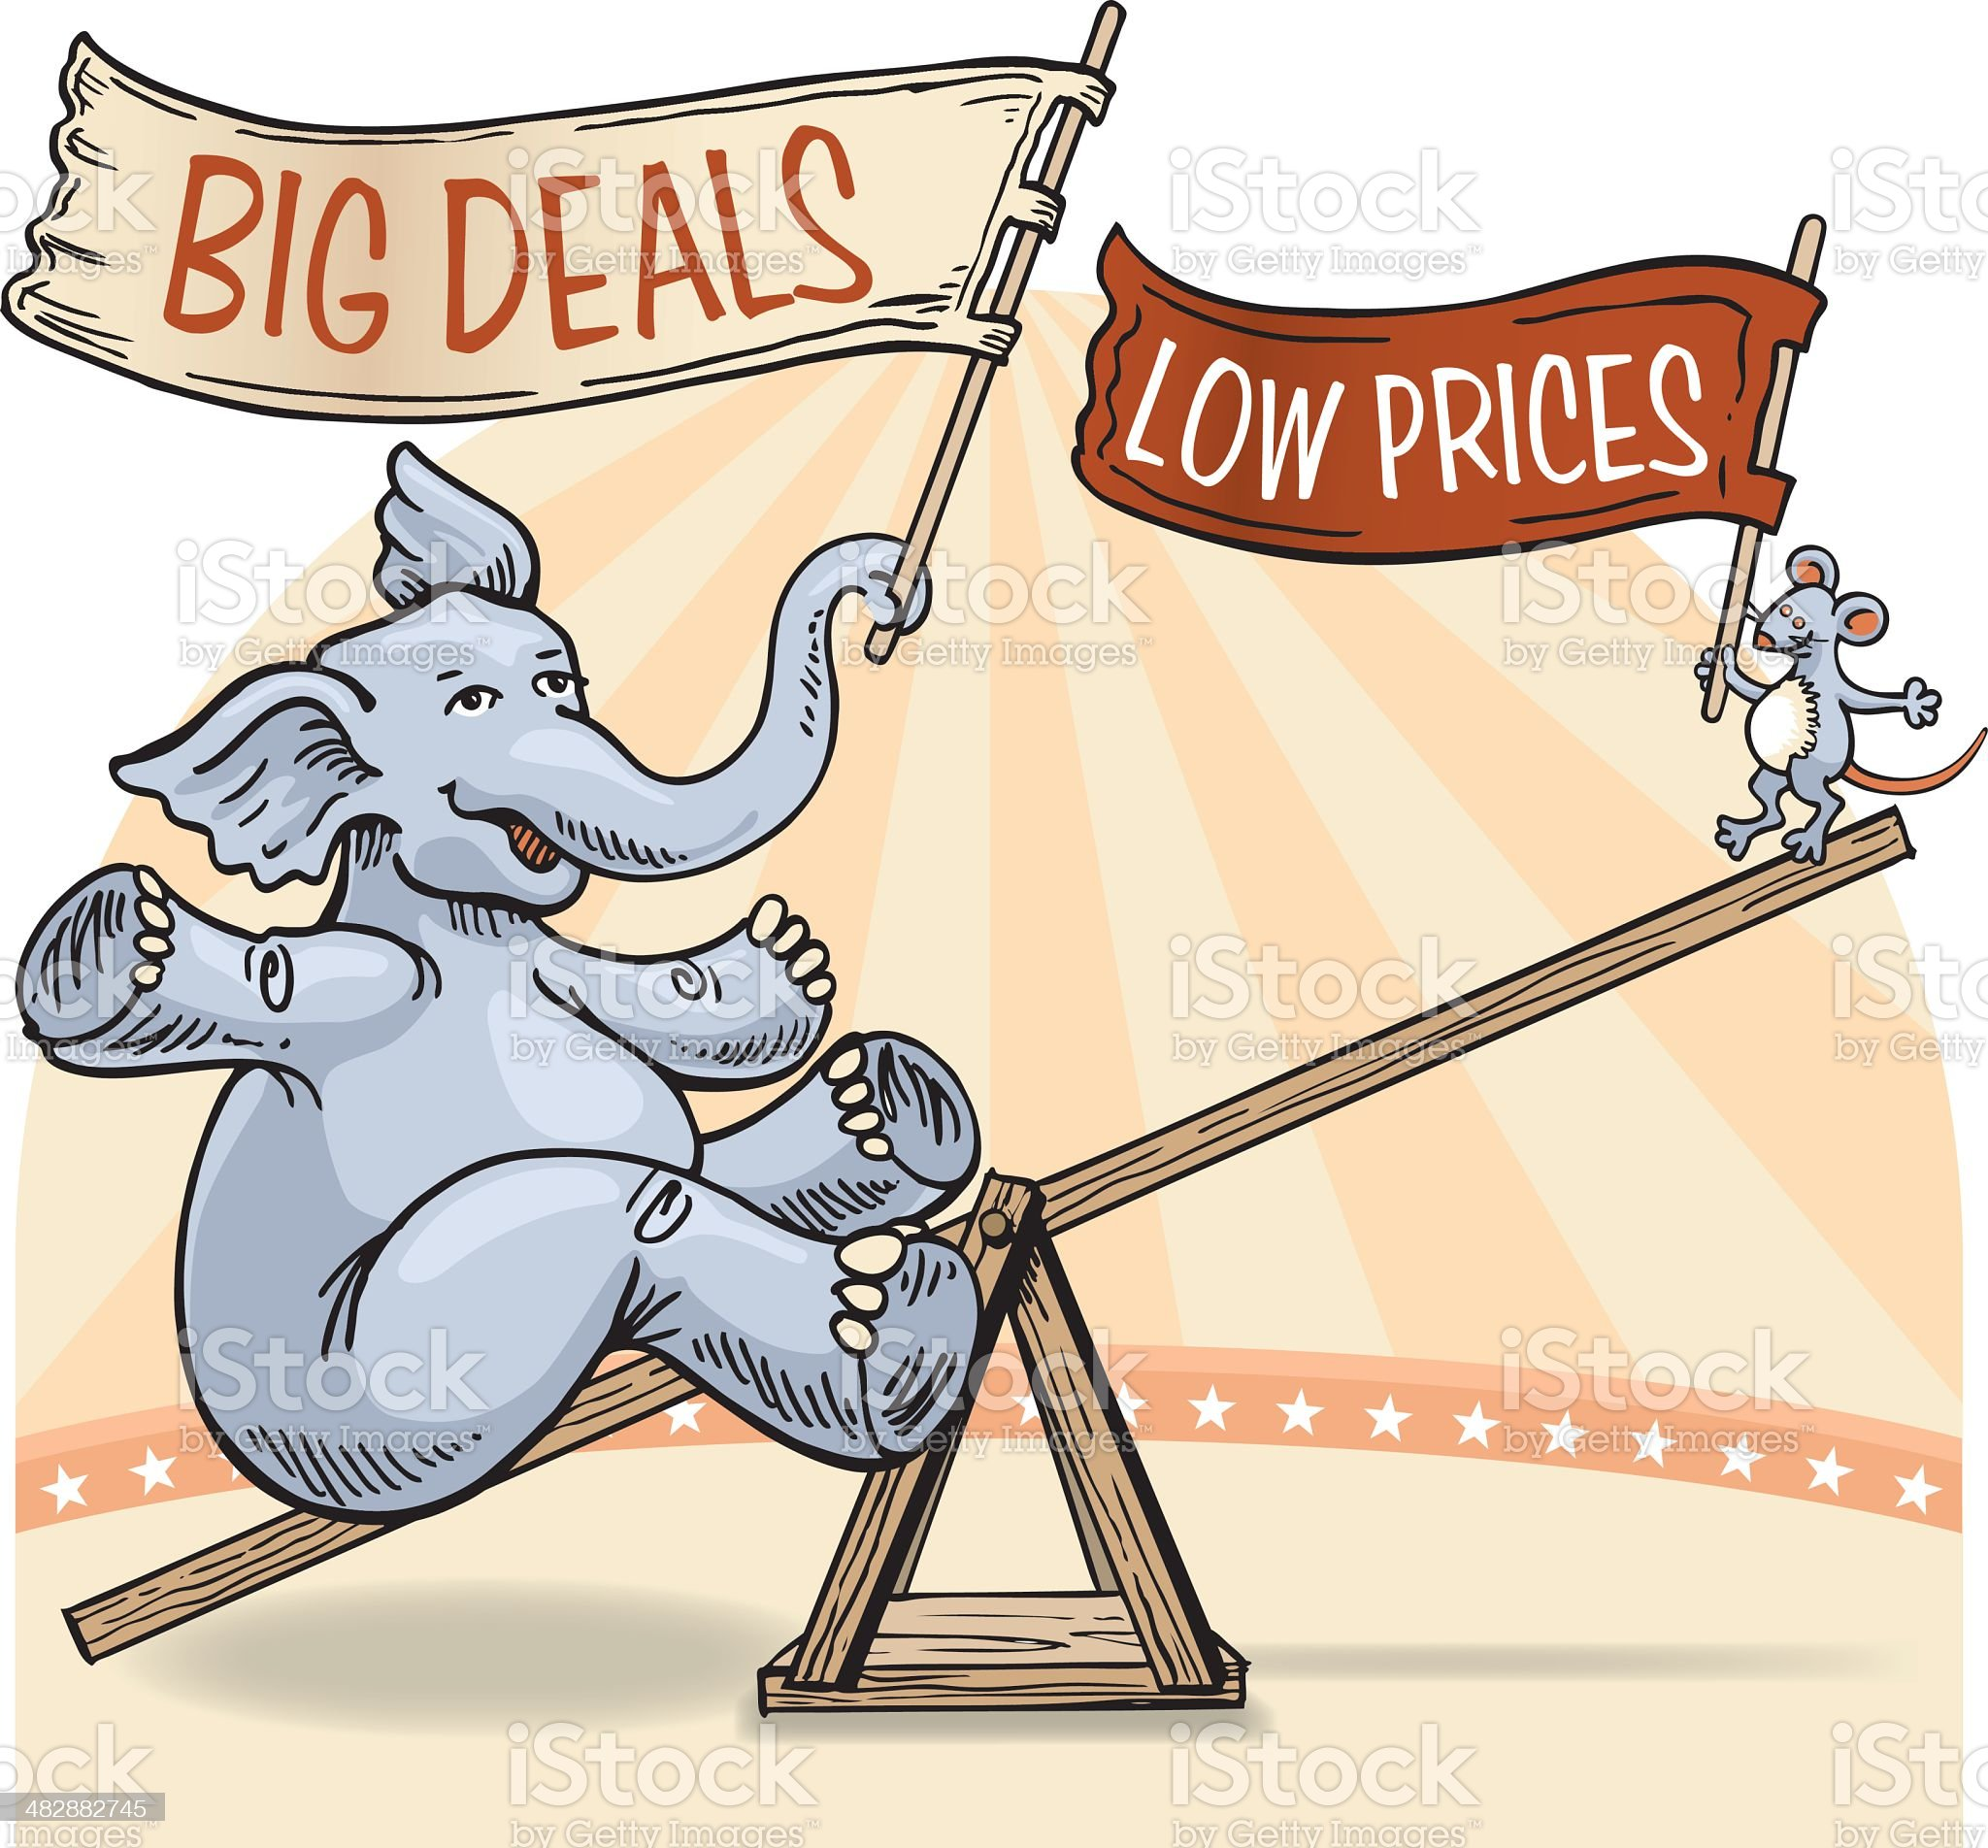 Elephant and Mouse 'Big Deals' Sale Illustration royalty-free stock vector art